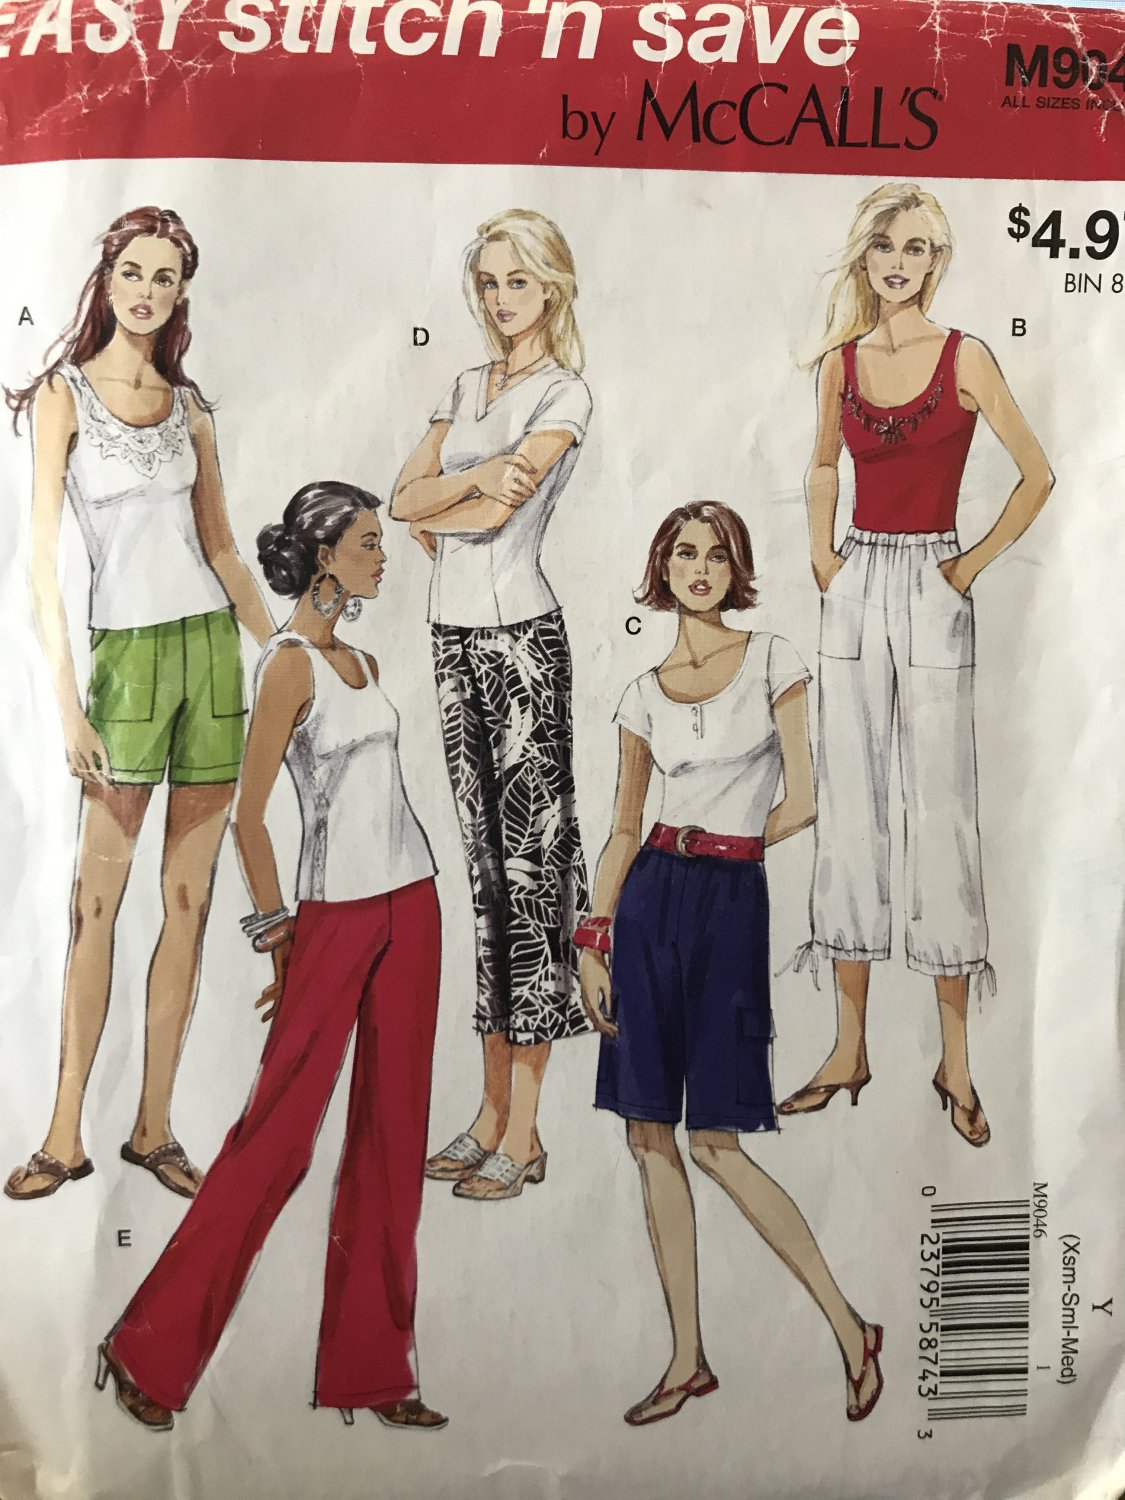 McCalls 9046 Easy Stitch 'n Save Misses Capri shorts Pants Sewing Pattern Size XS - Medium